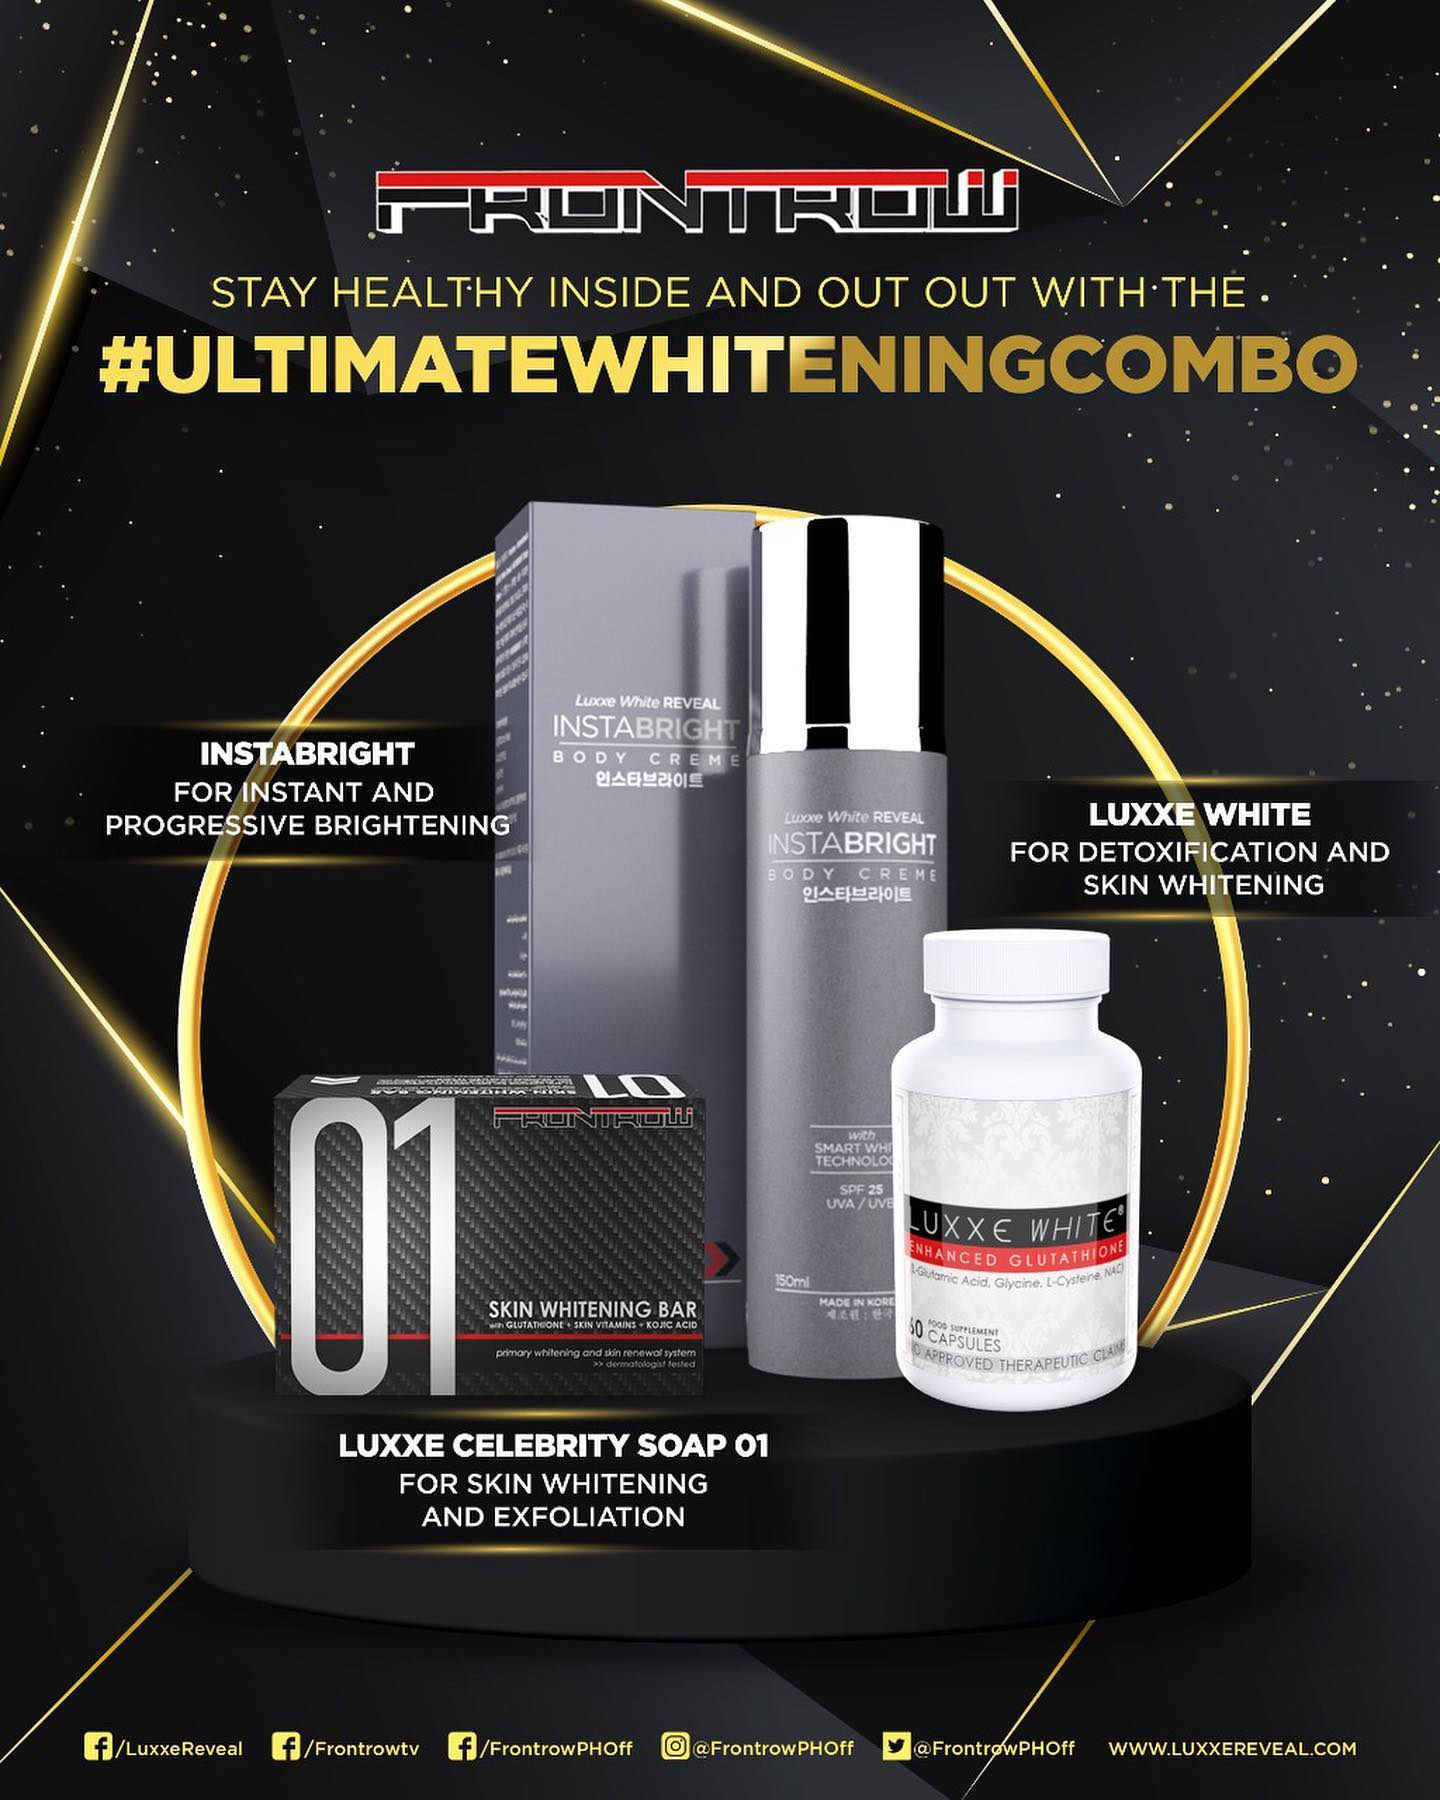 Luxxe All-Out Health Care With the Ultimate Whitening Combo